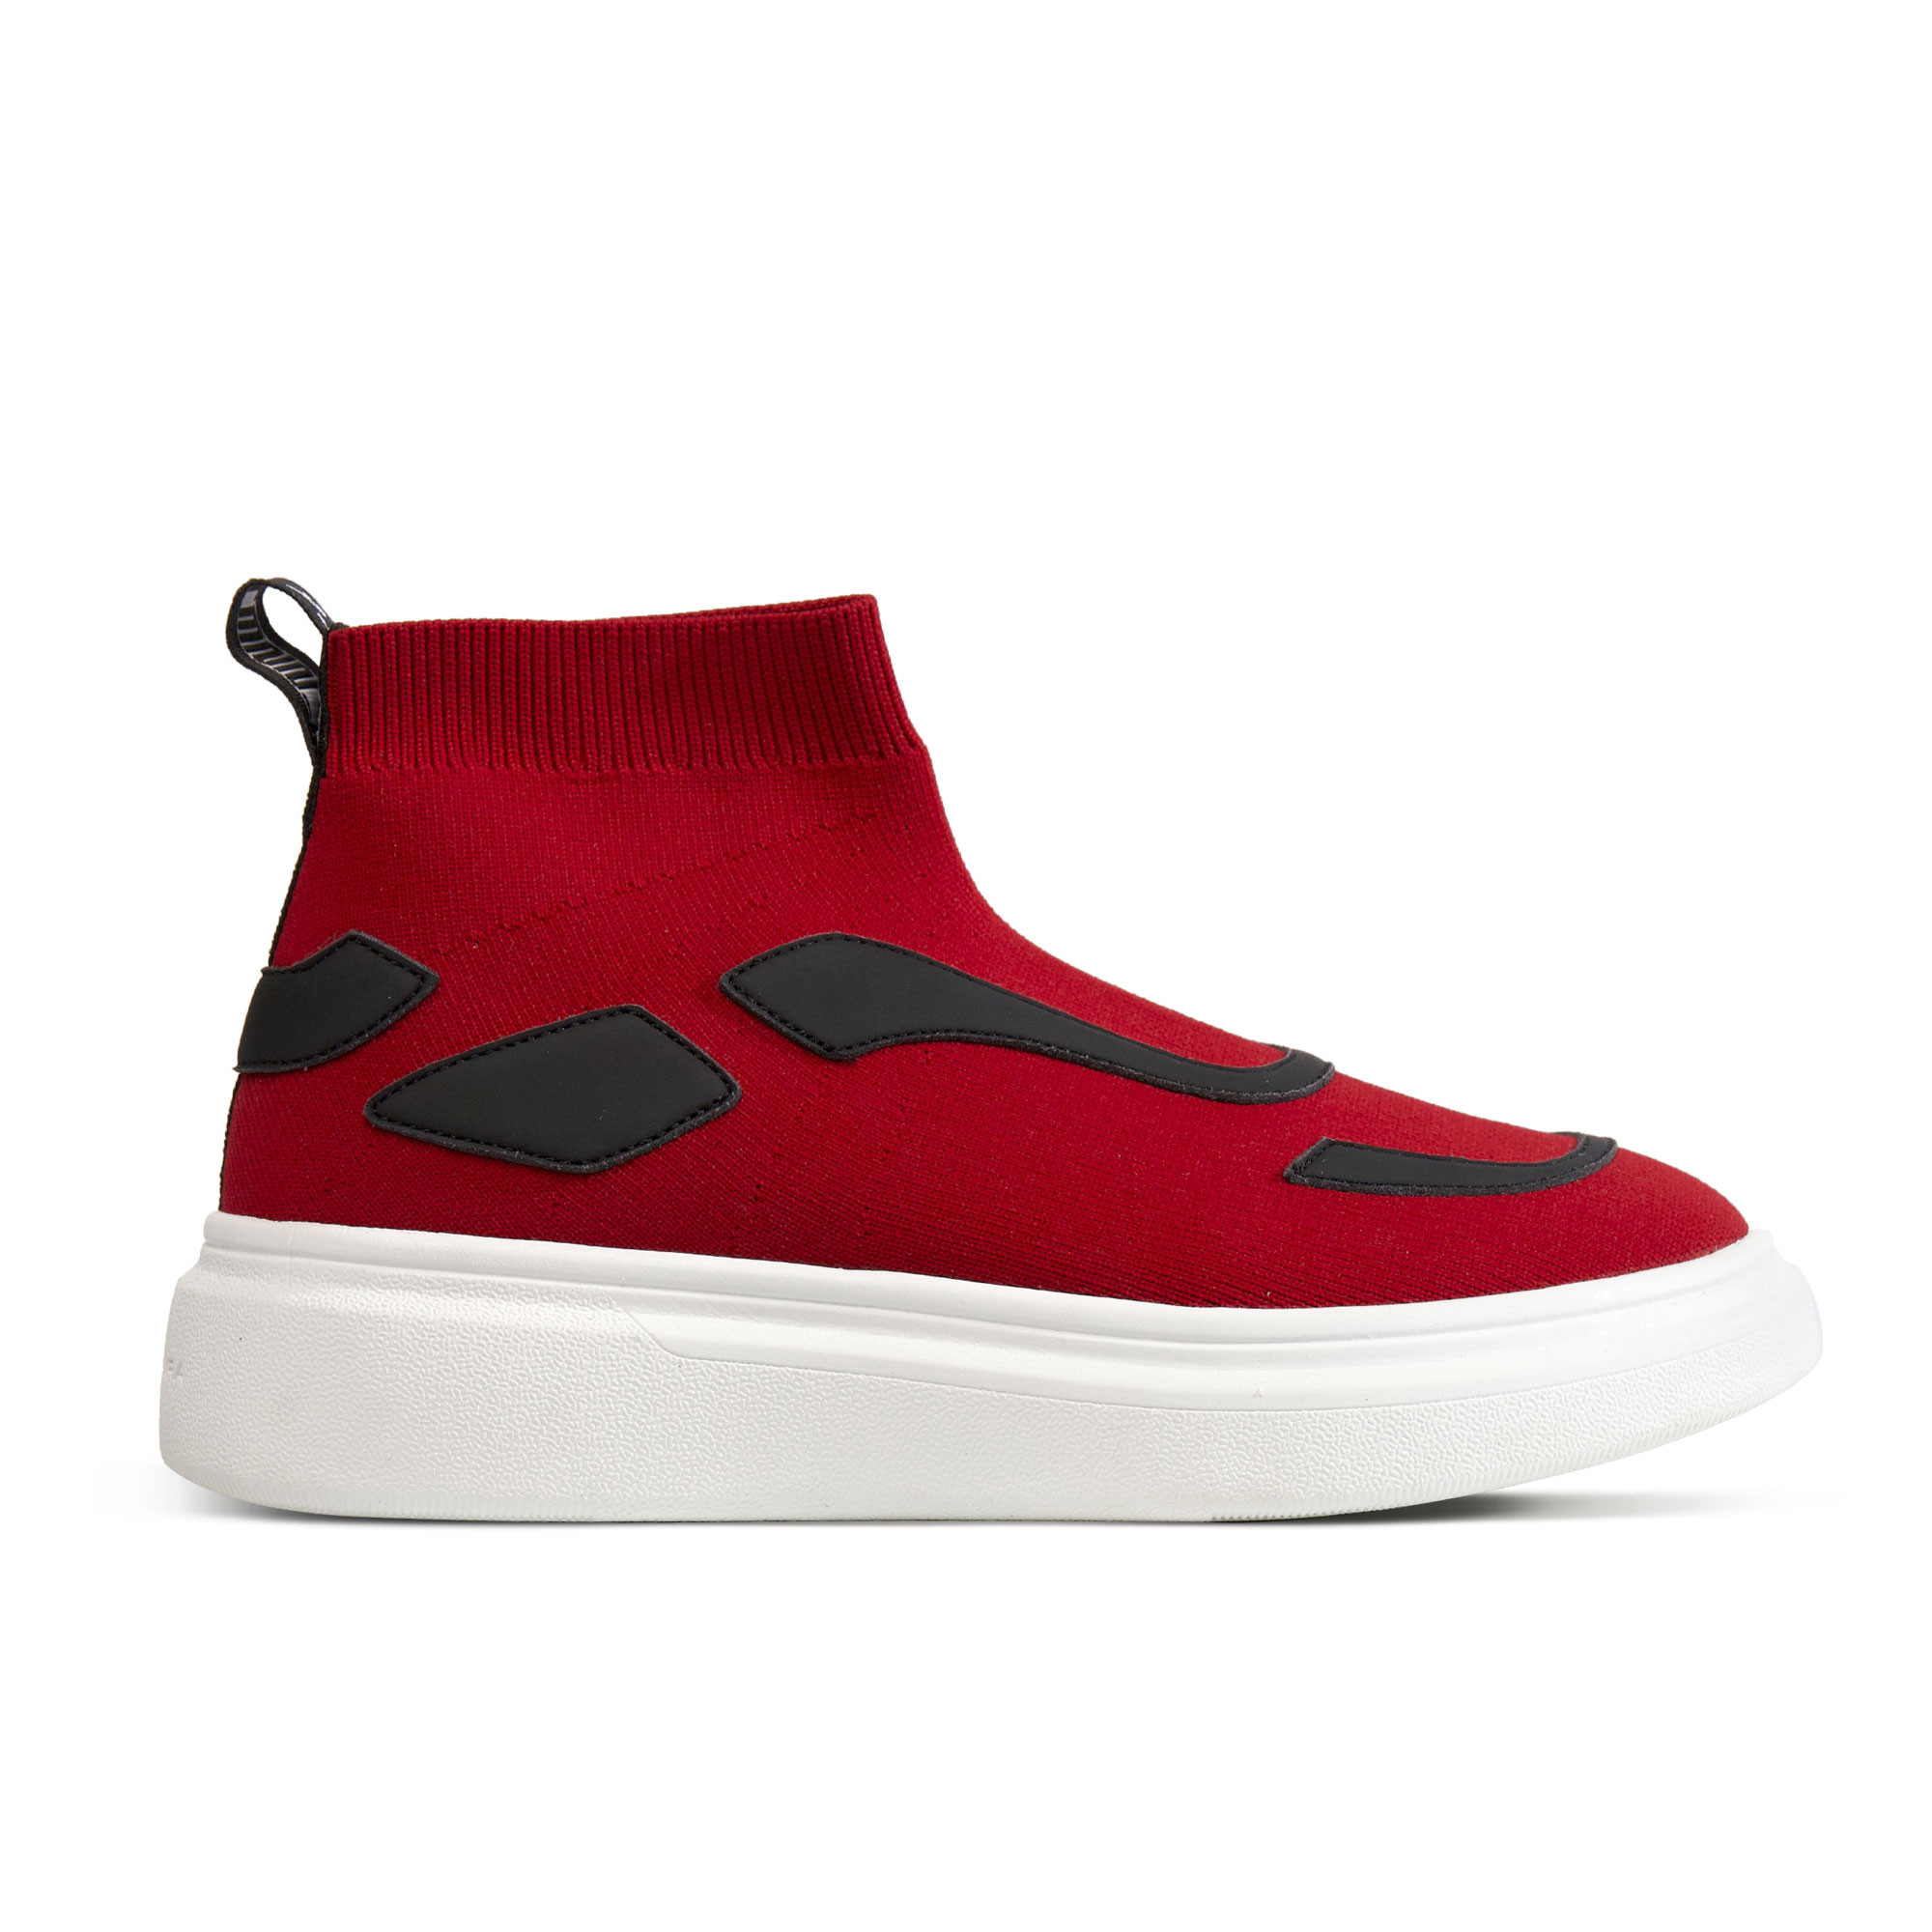 Edge Petch Red